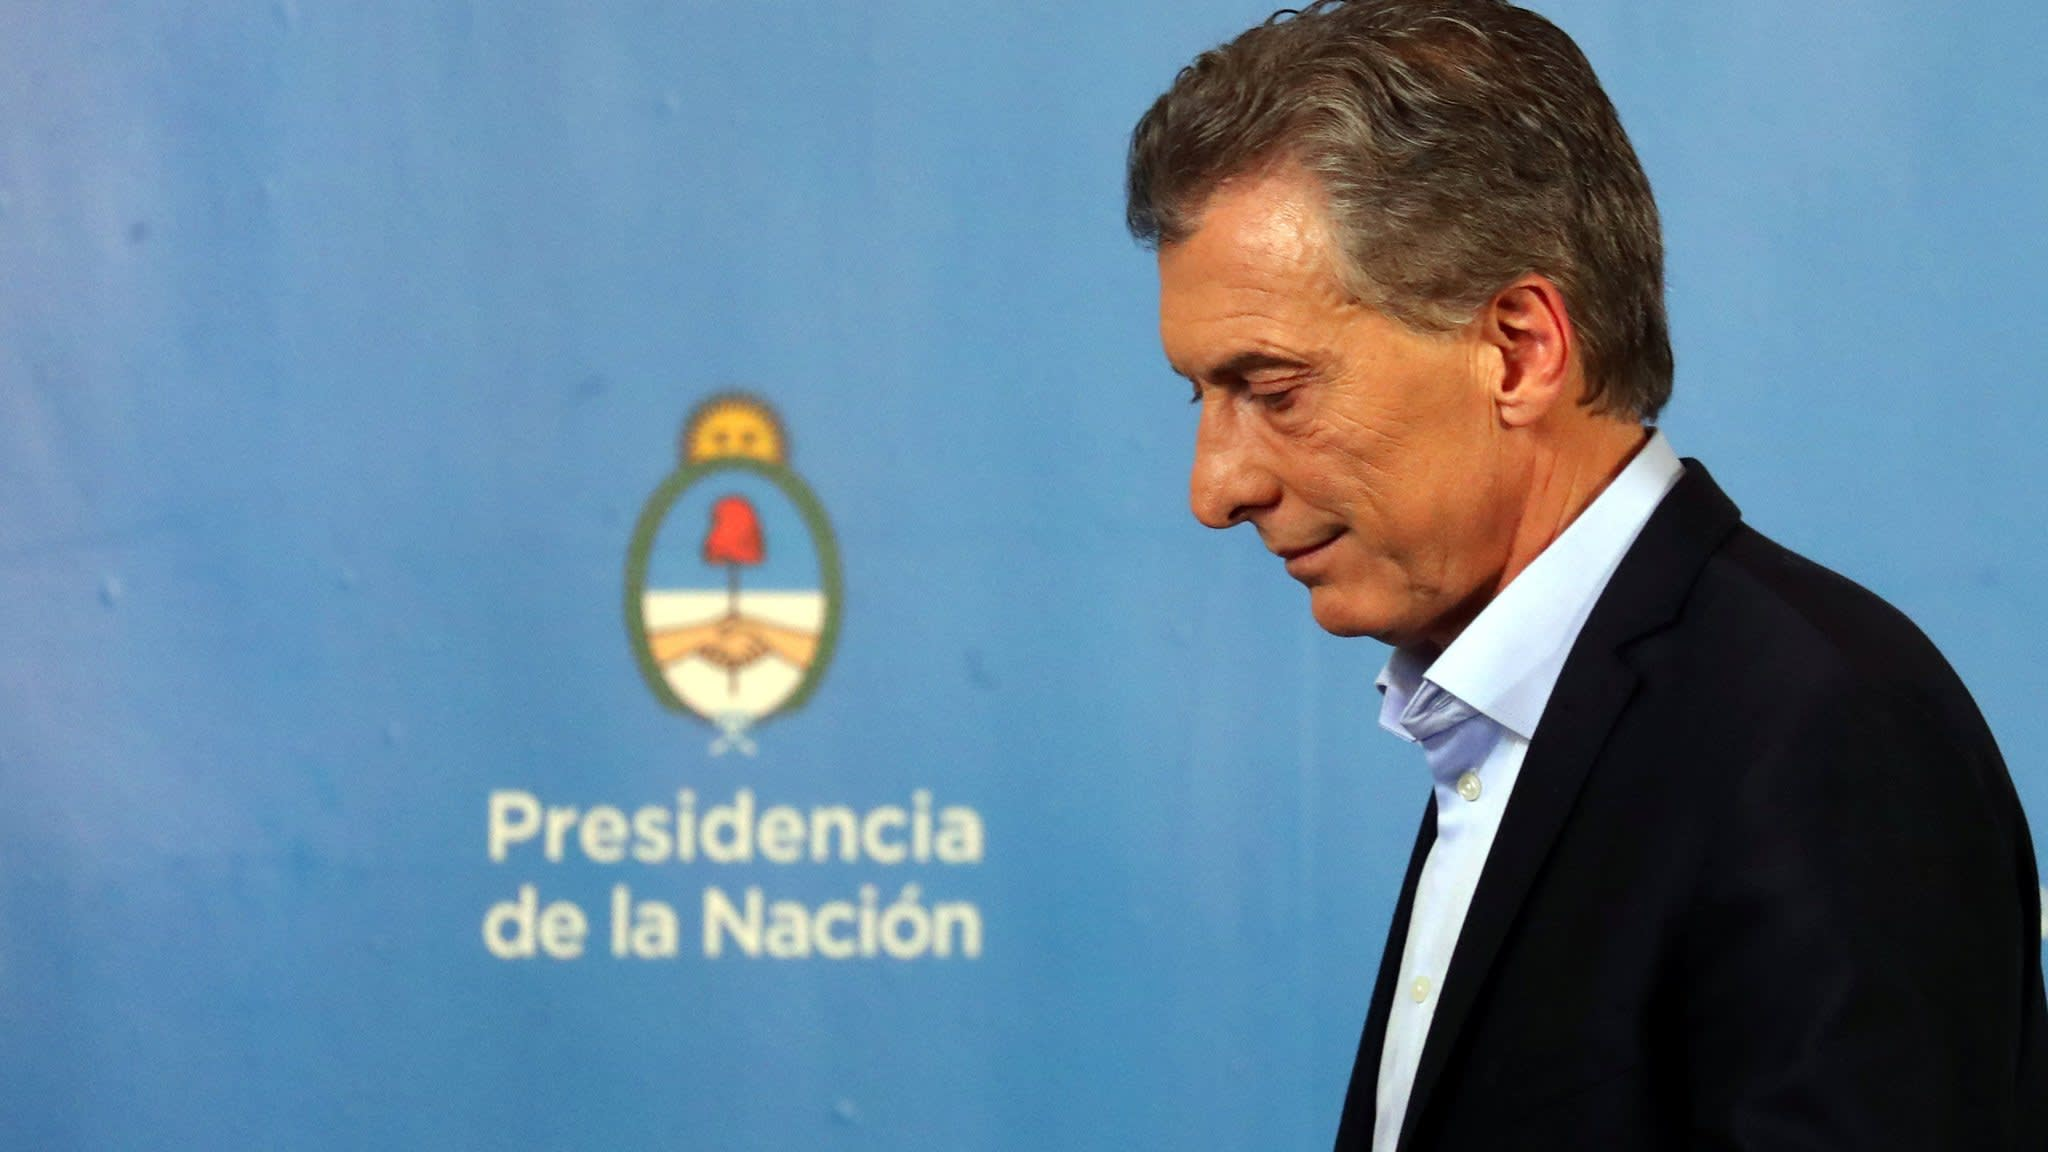 Argentine currency crisis spreads to politics